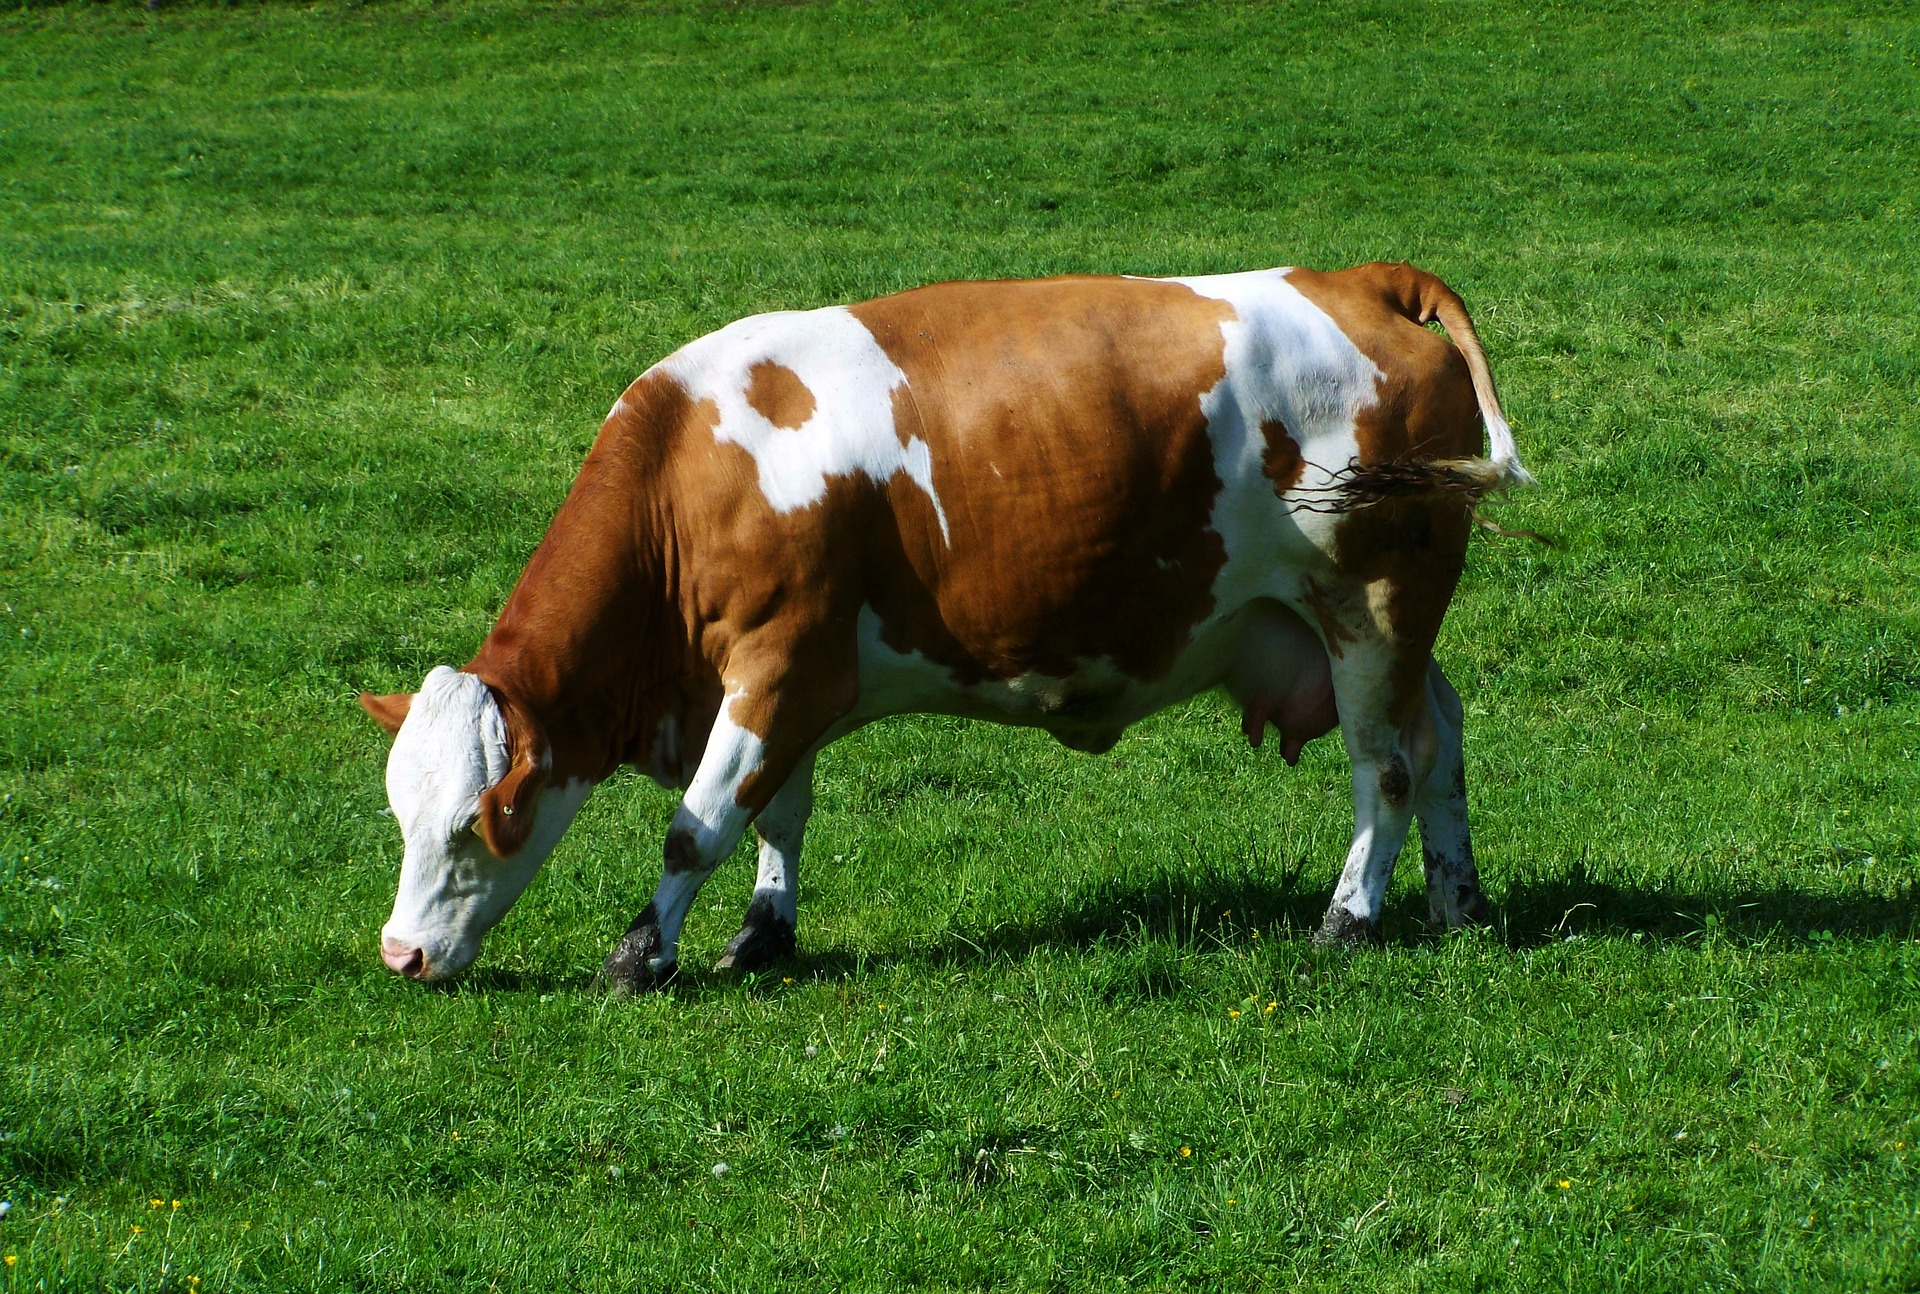 brown-and-white-cow-779425_1920